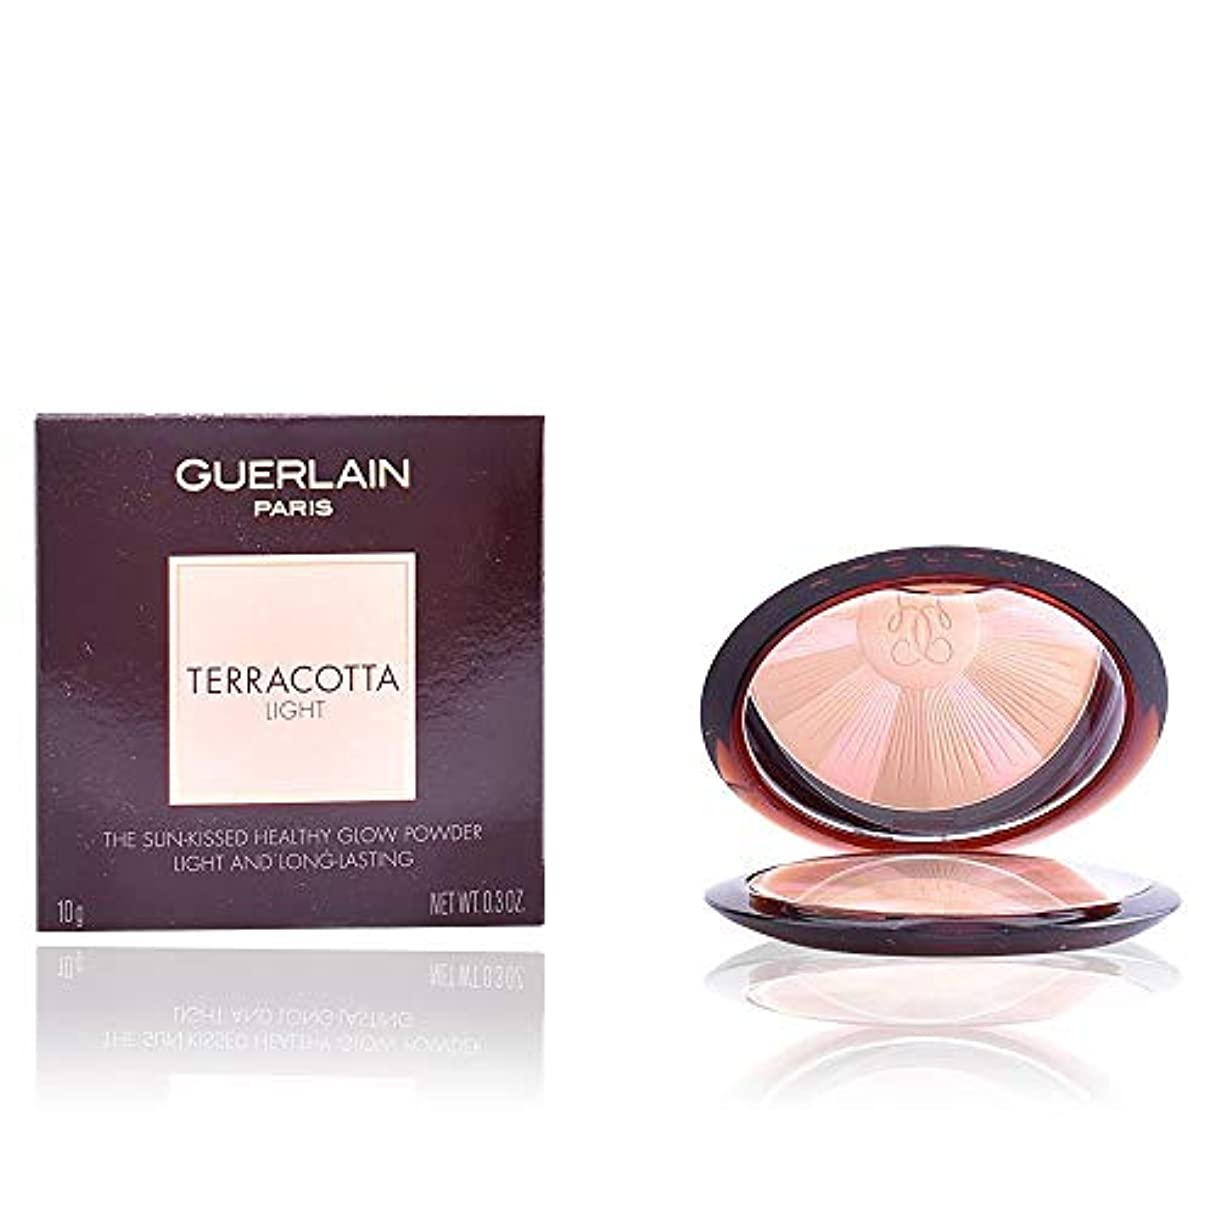 ゲラン Terracotta Light The Sun Kissed Healthy Glow Powder - # 01 Light Warm 10g/0.3oz並行輸入品